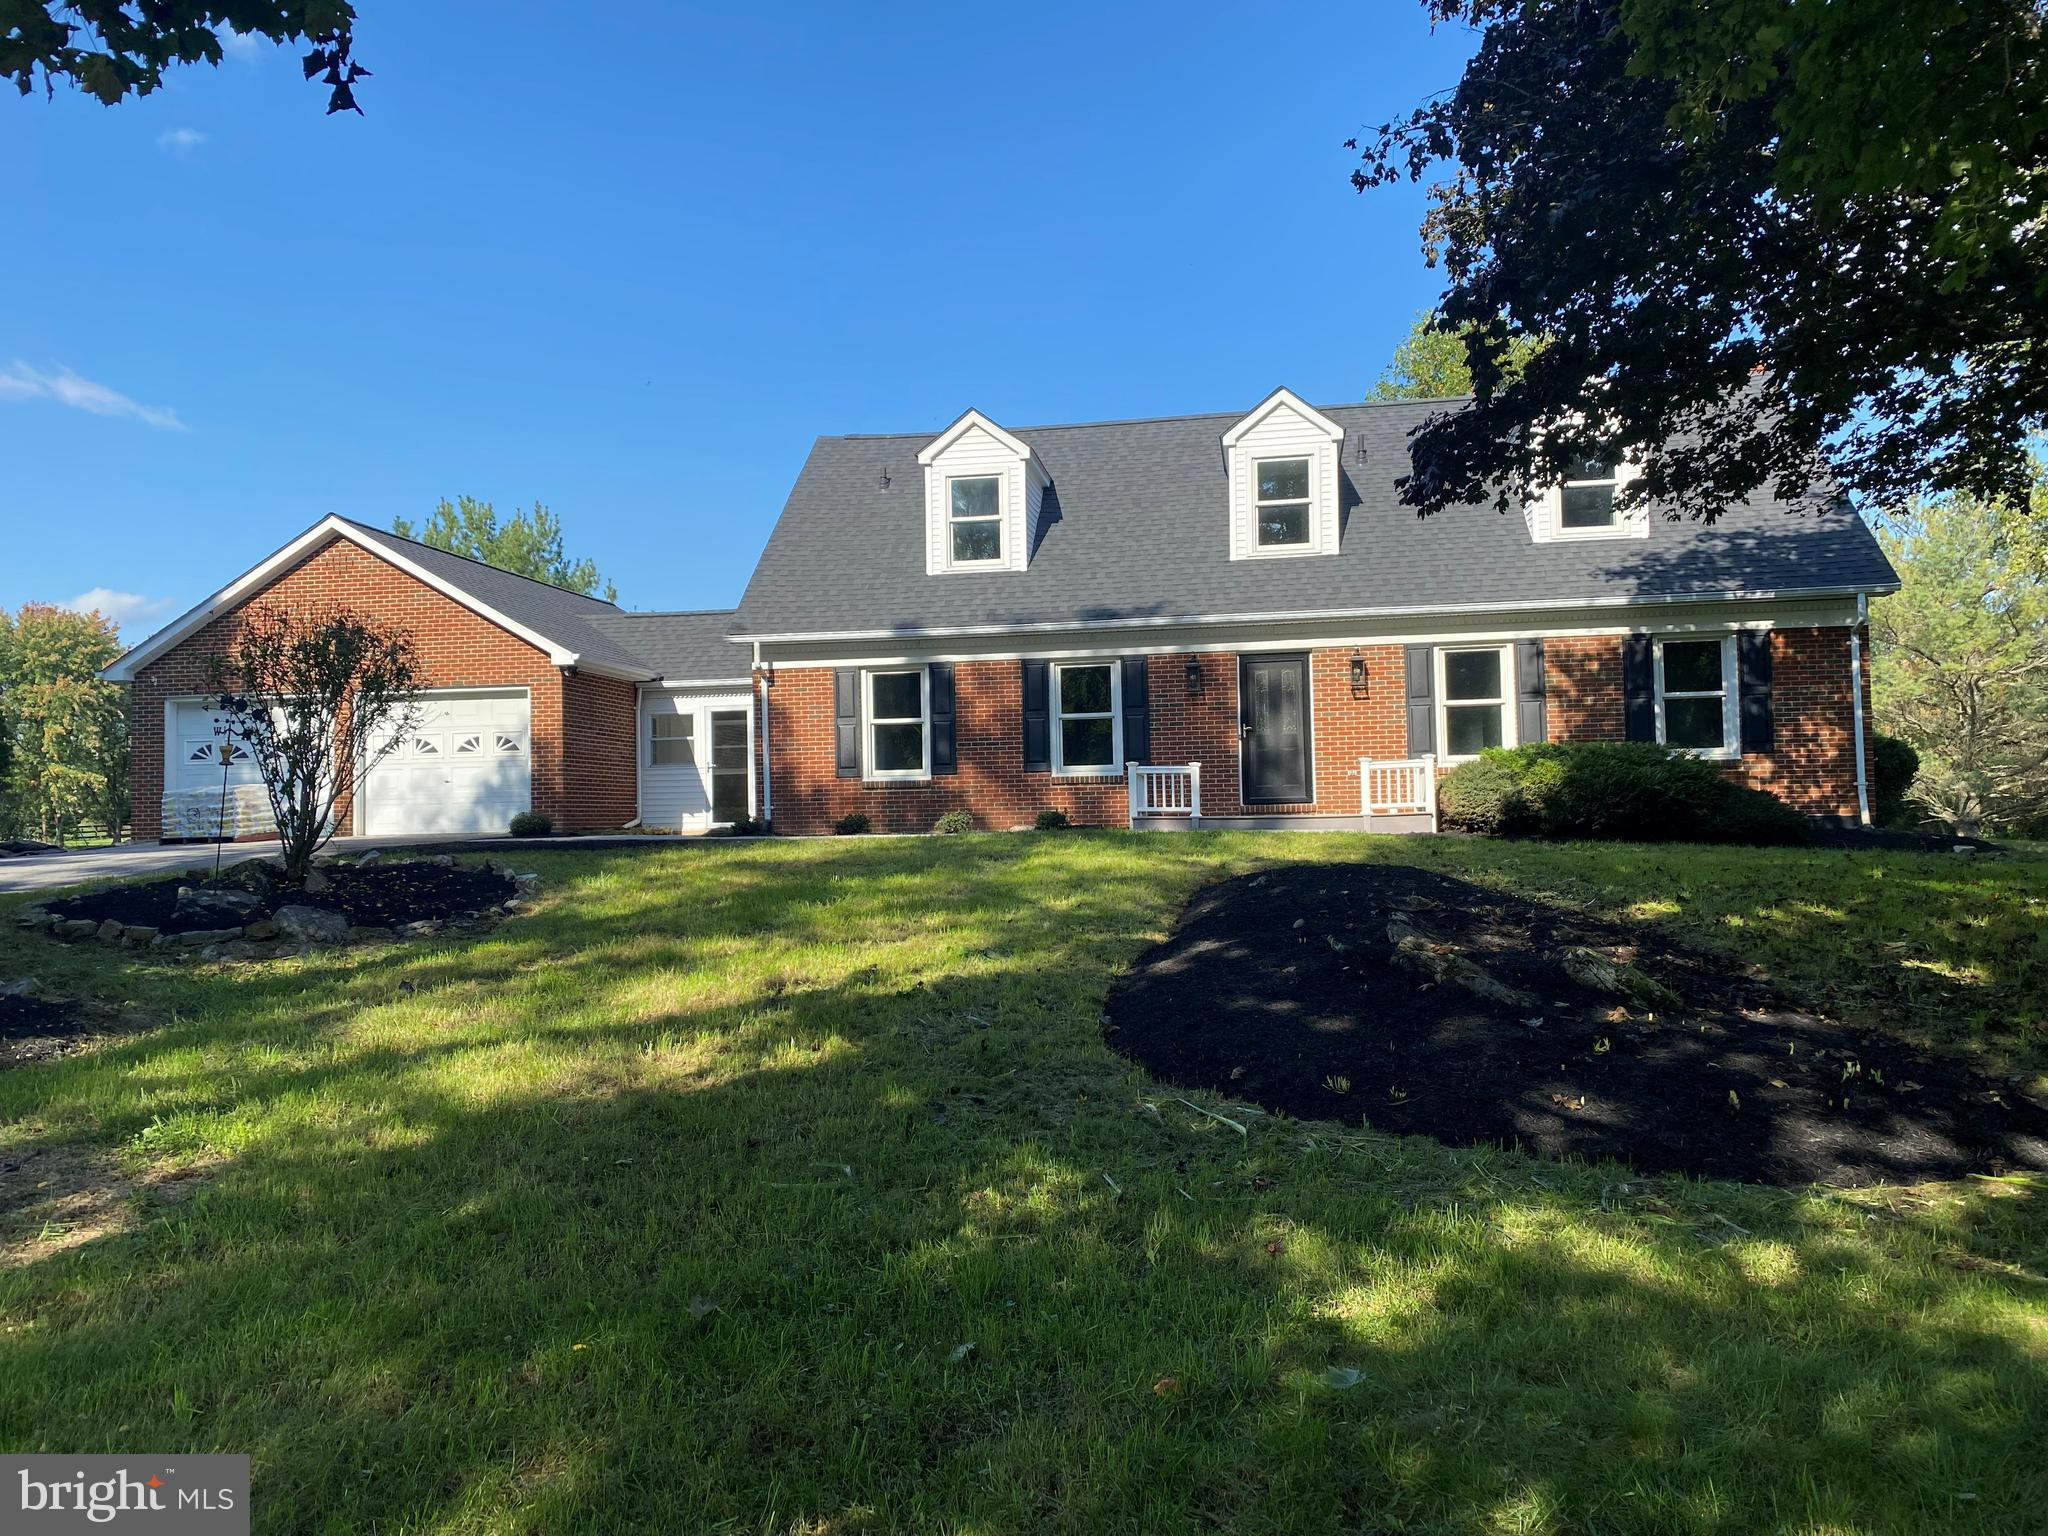 Welcome Home to this Charming 4 Bedroom, 3.5 Bath home situated on 5 picturesque acres.  This home h